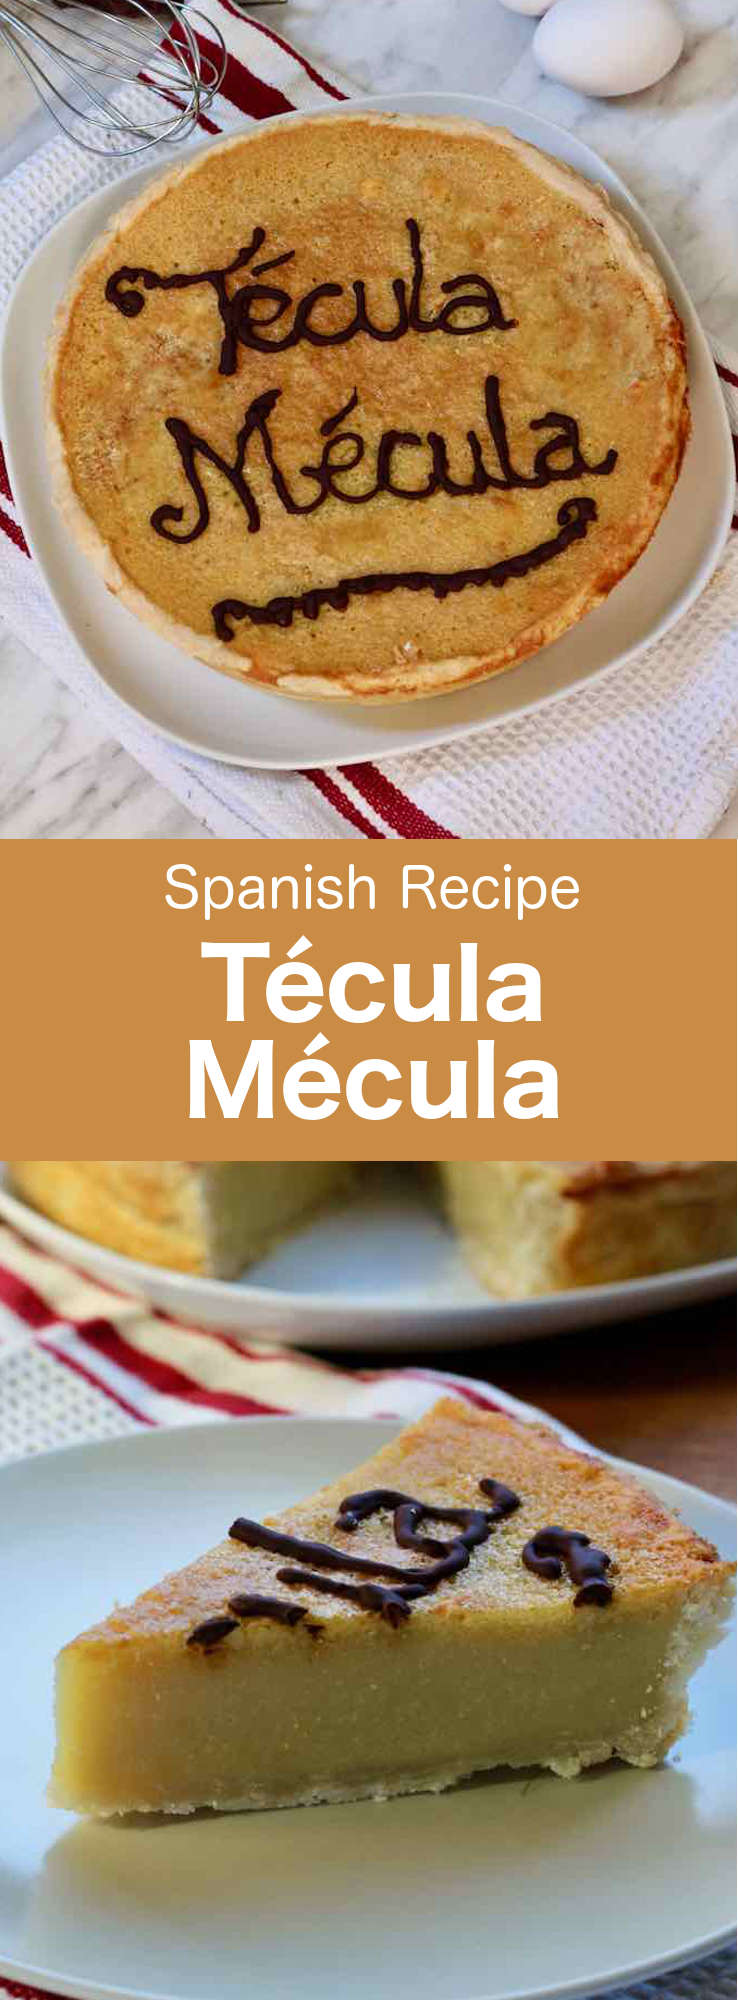 Tecula Mecula is a delicious traditional dessert from the Extremadura region of western Spain that is prepared with almond and egg yolks. #SpanishCuisine #Spain #SpanishRecipe #SpanishFood #WorldCuisine #196flavors